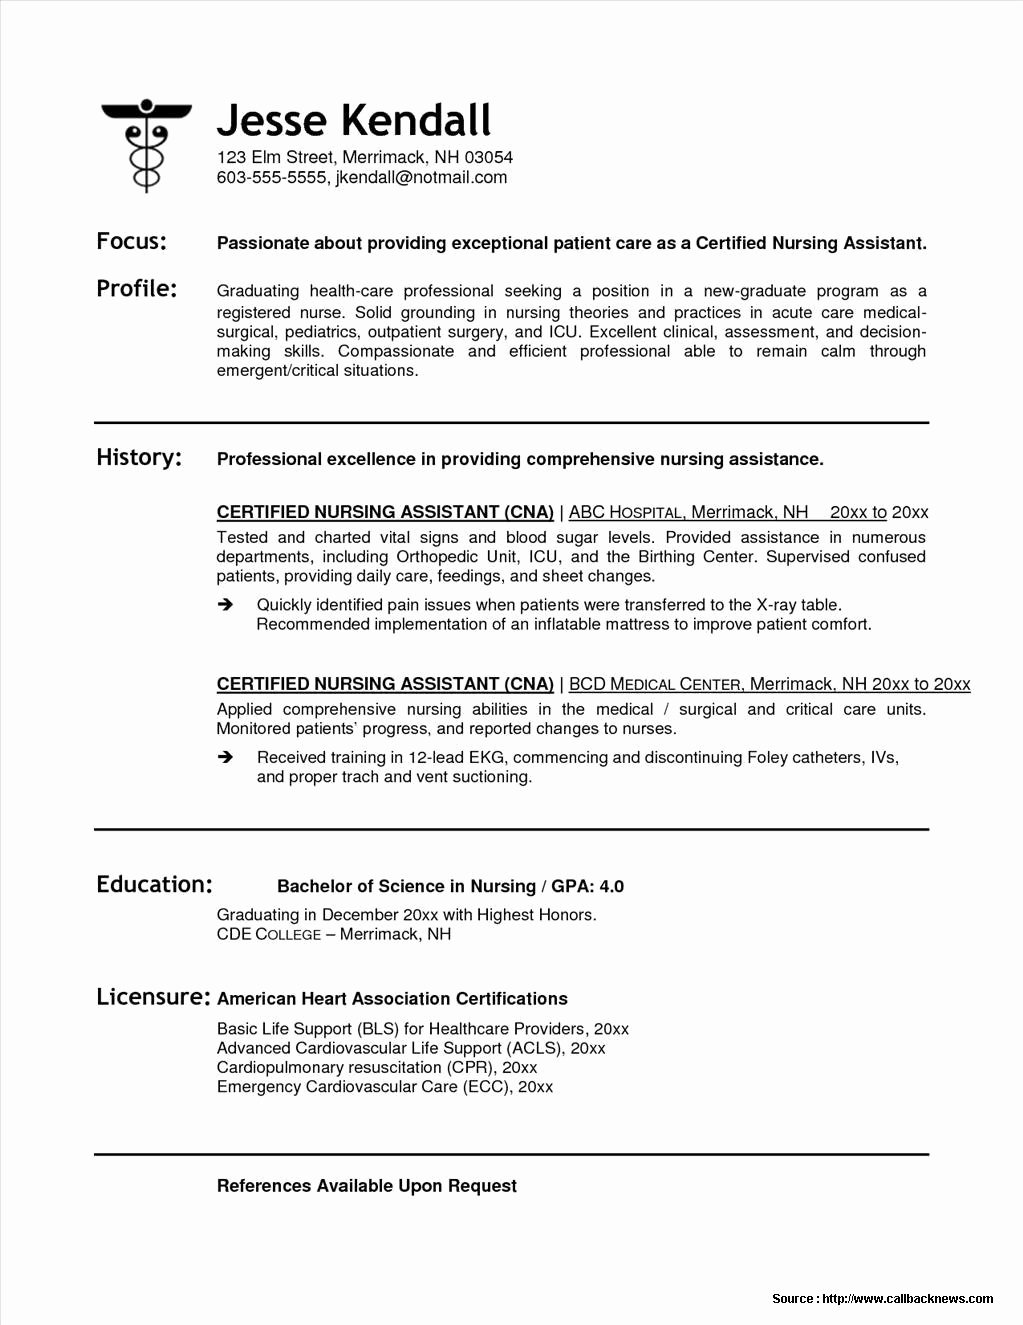 Sample Resume for Cna Position Resume Resume Examples